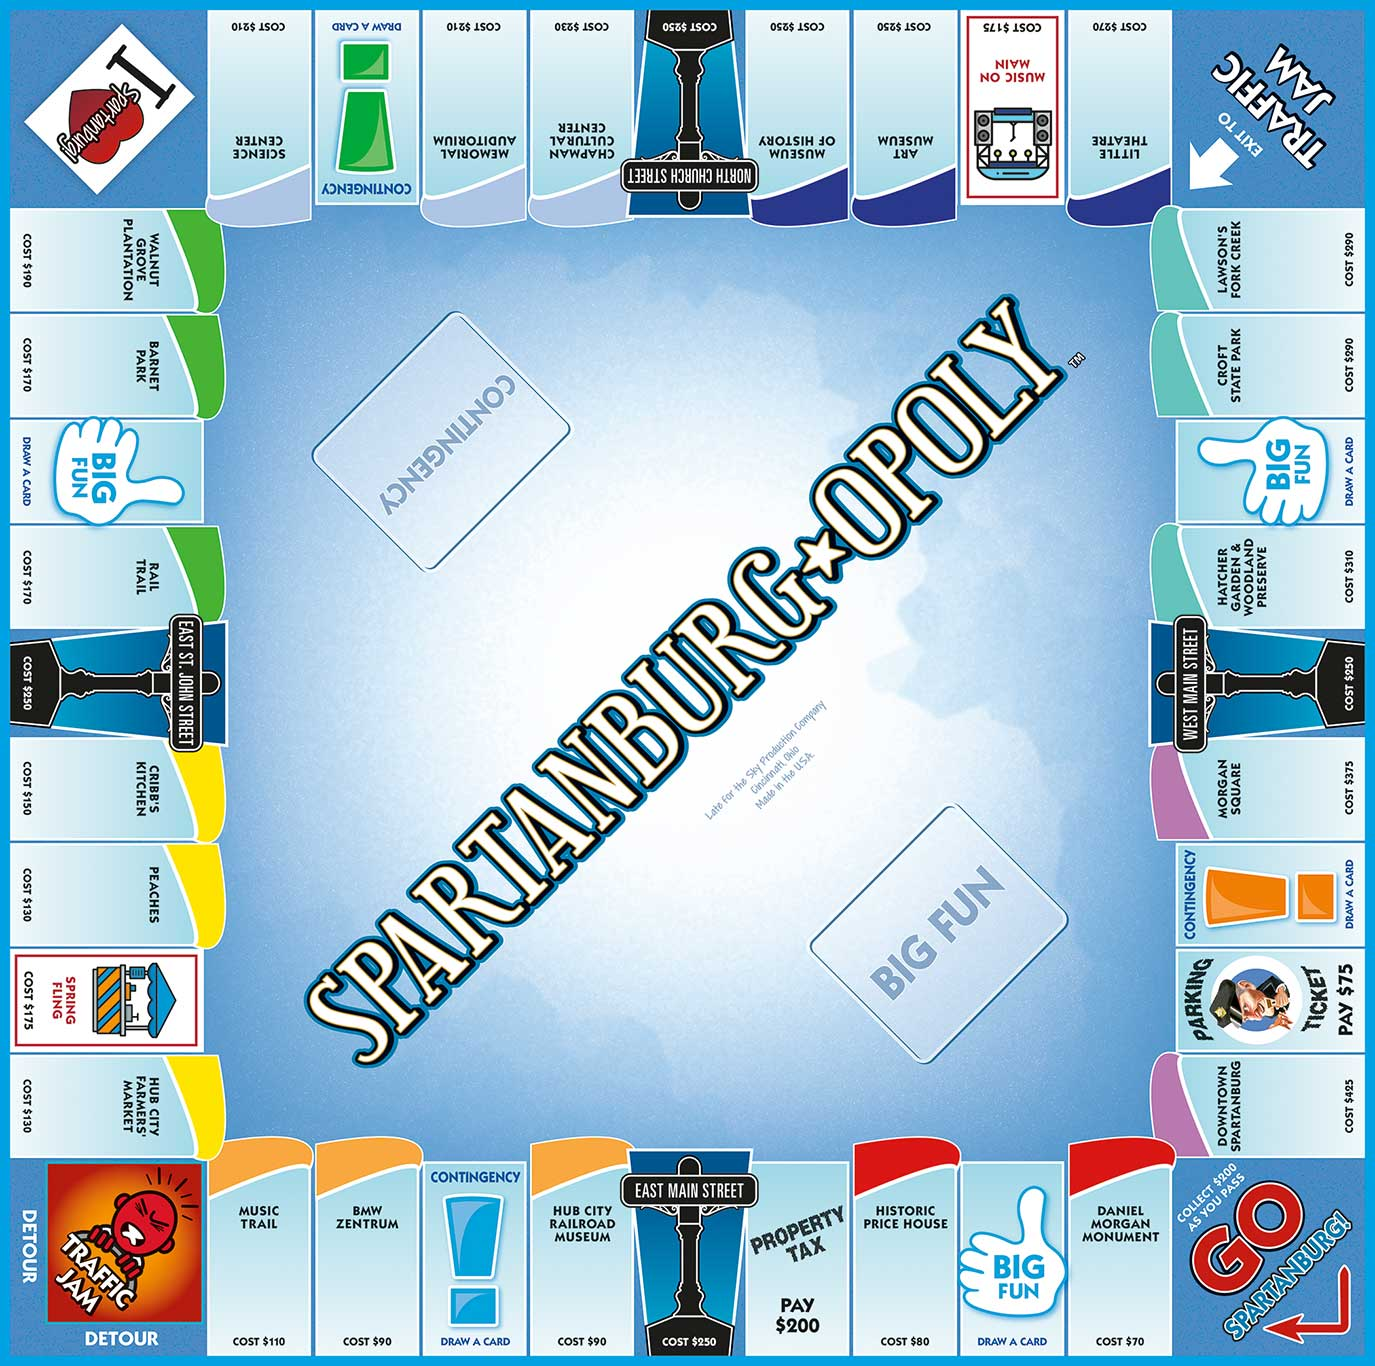 SPARTANBURG-OPOLY Board Game